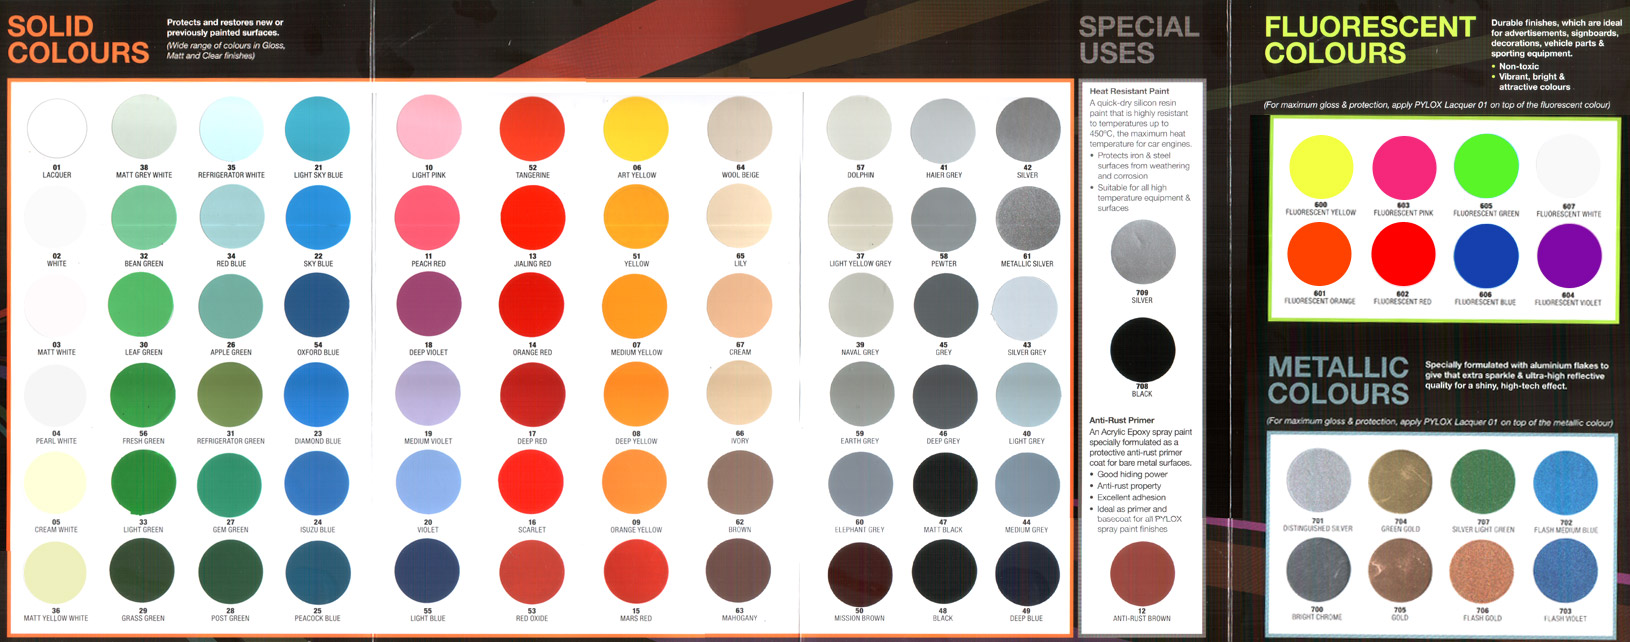 Nippon Paint Pylox Spray Paint Colour Chart Nippon Paint Singapore